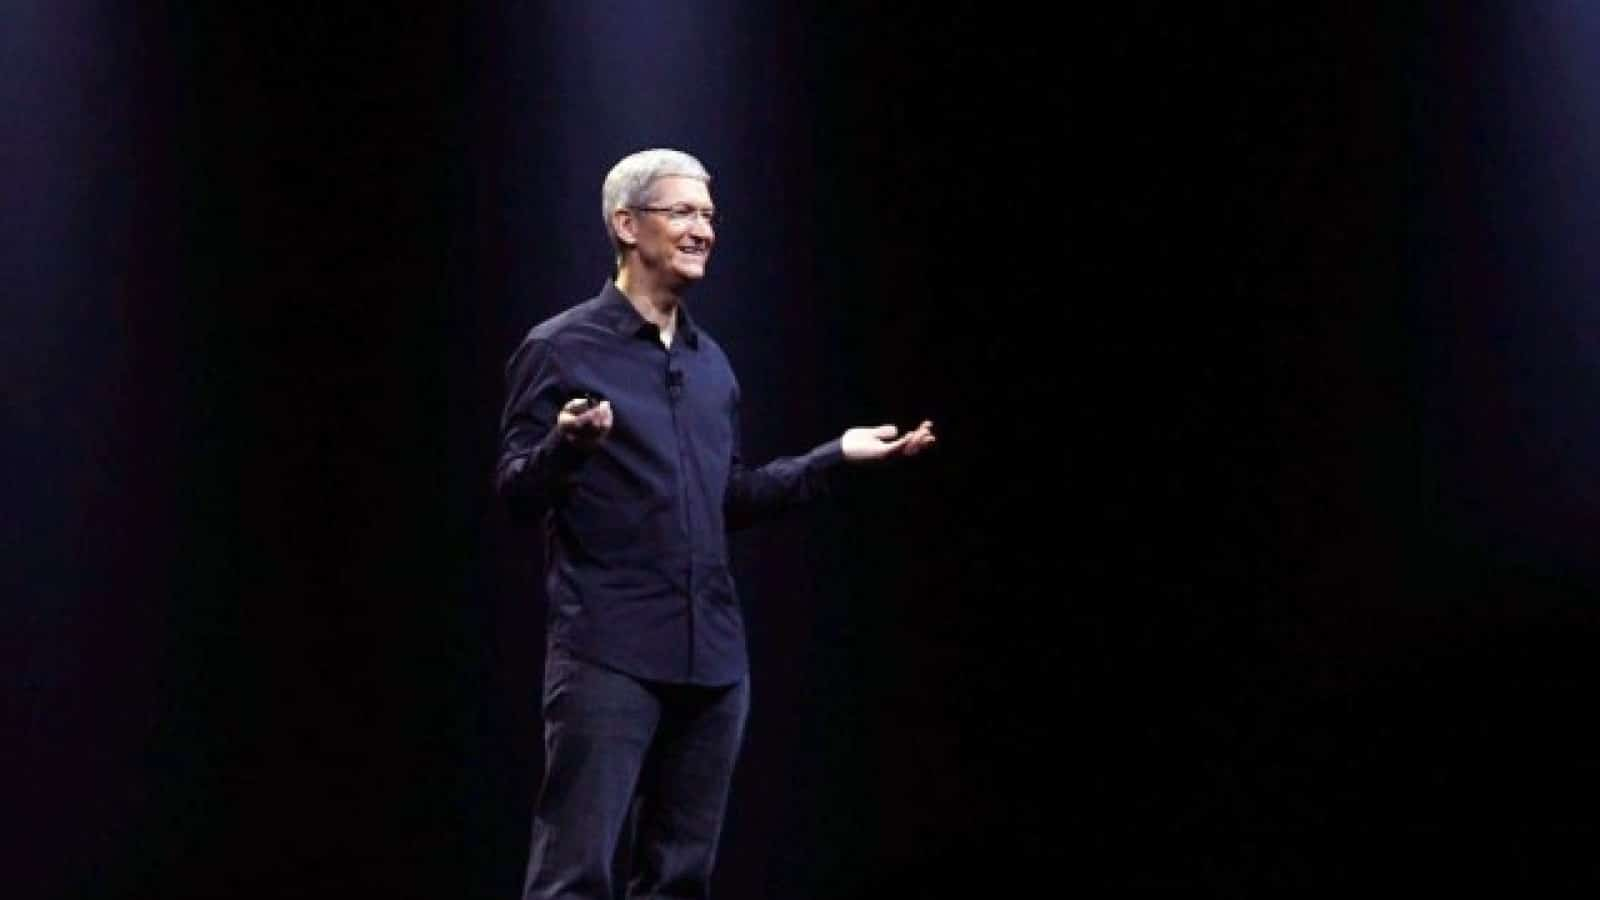 apple ceo tim cook on stage